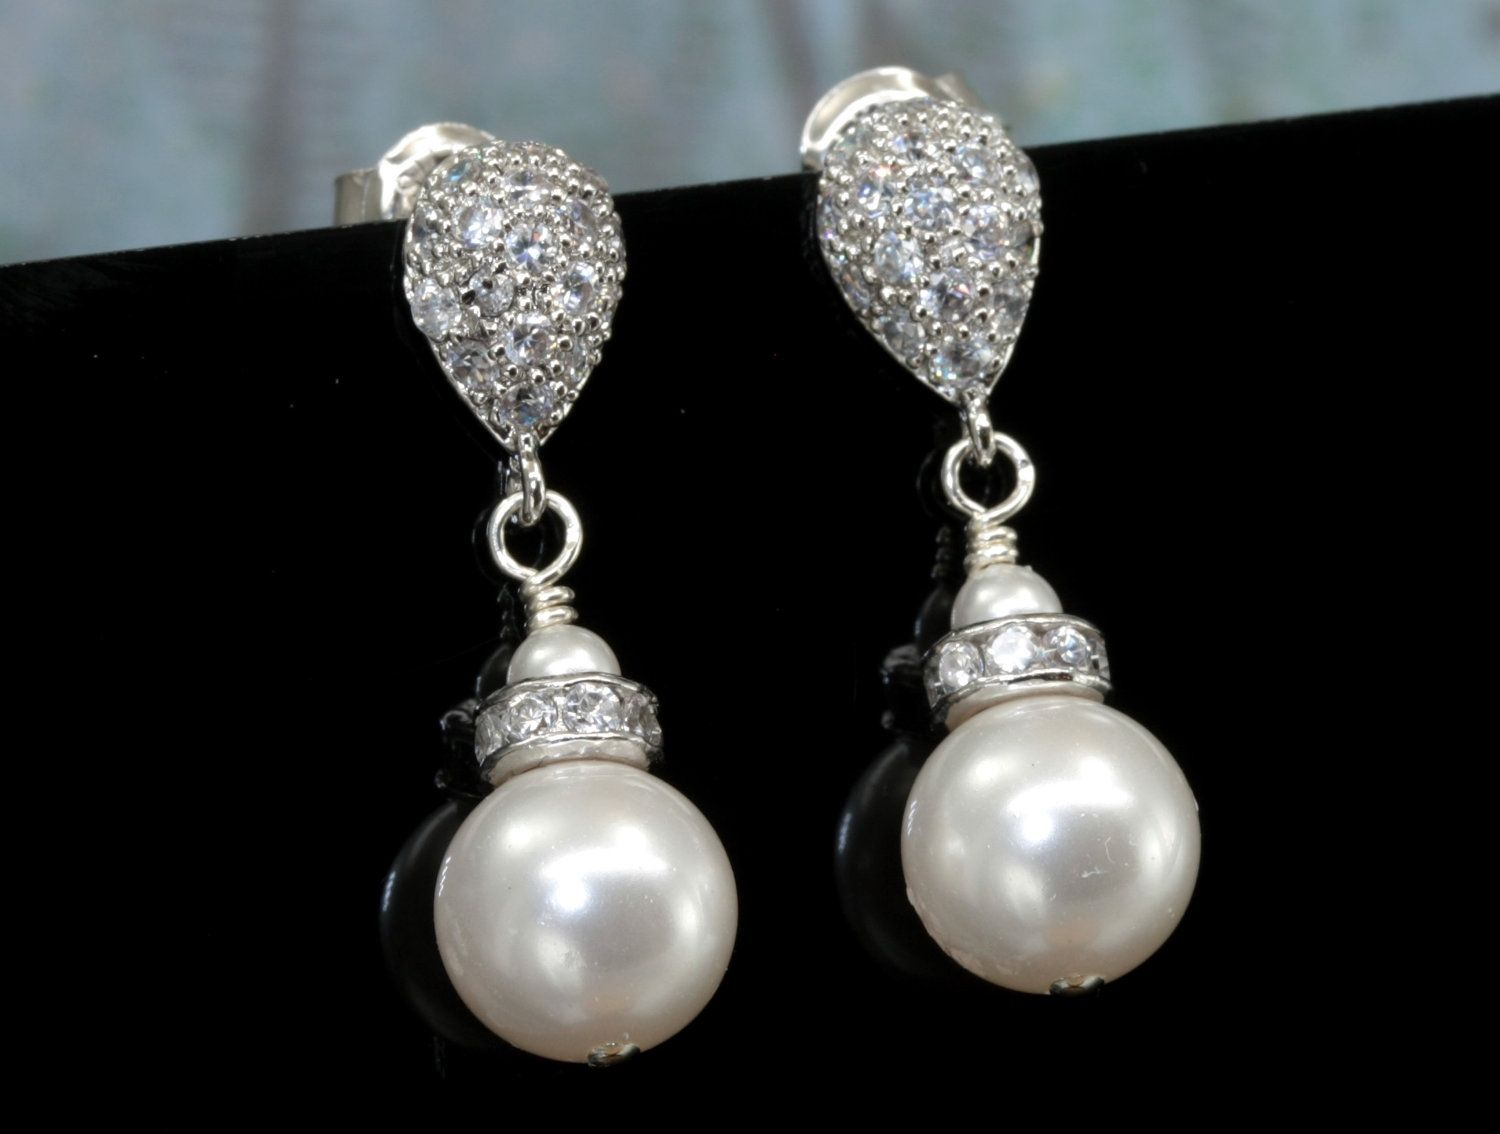 Buy a Hand Crafted Bridal Pearl Earrings